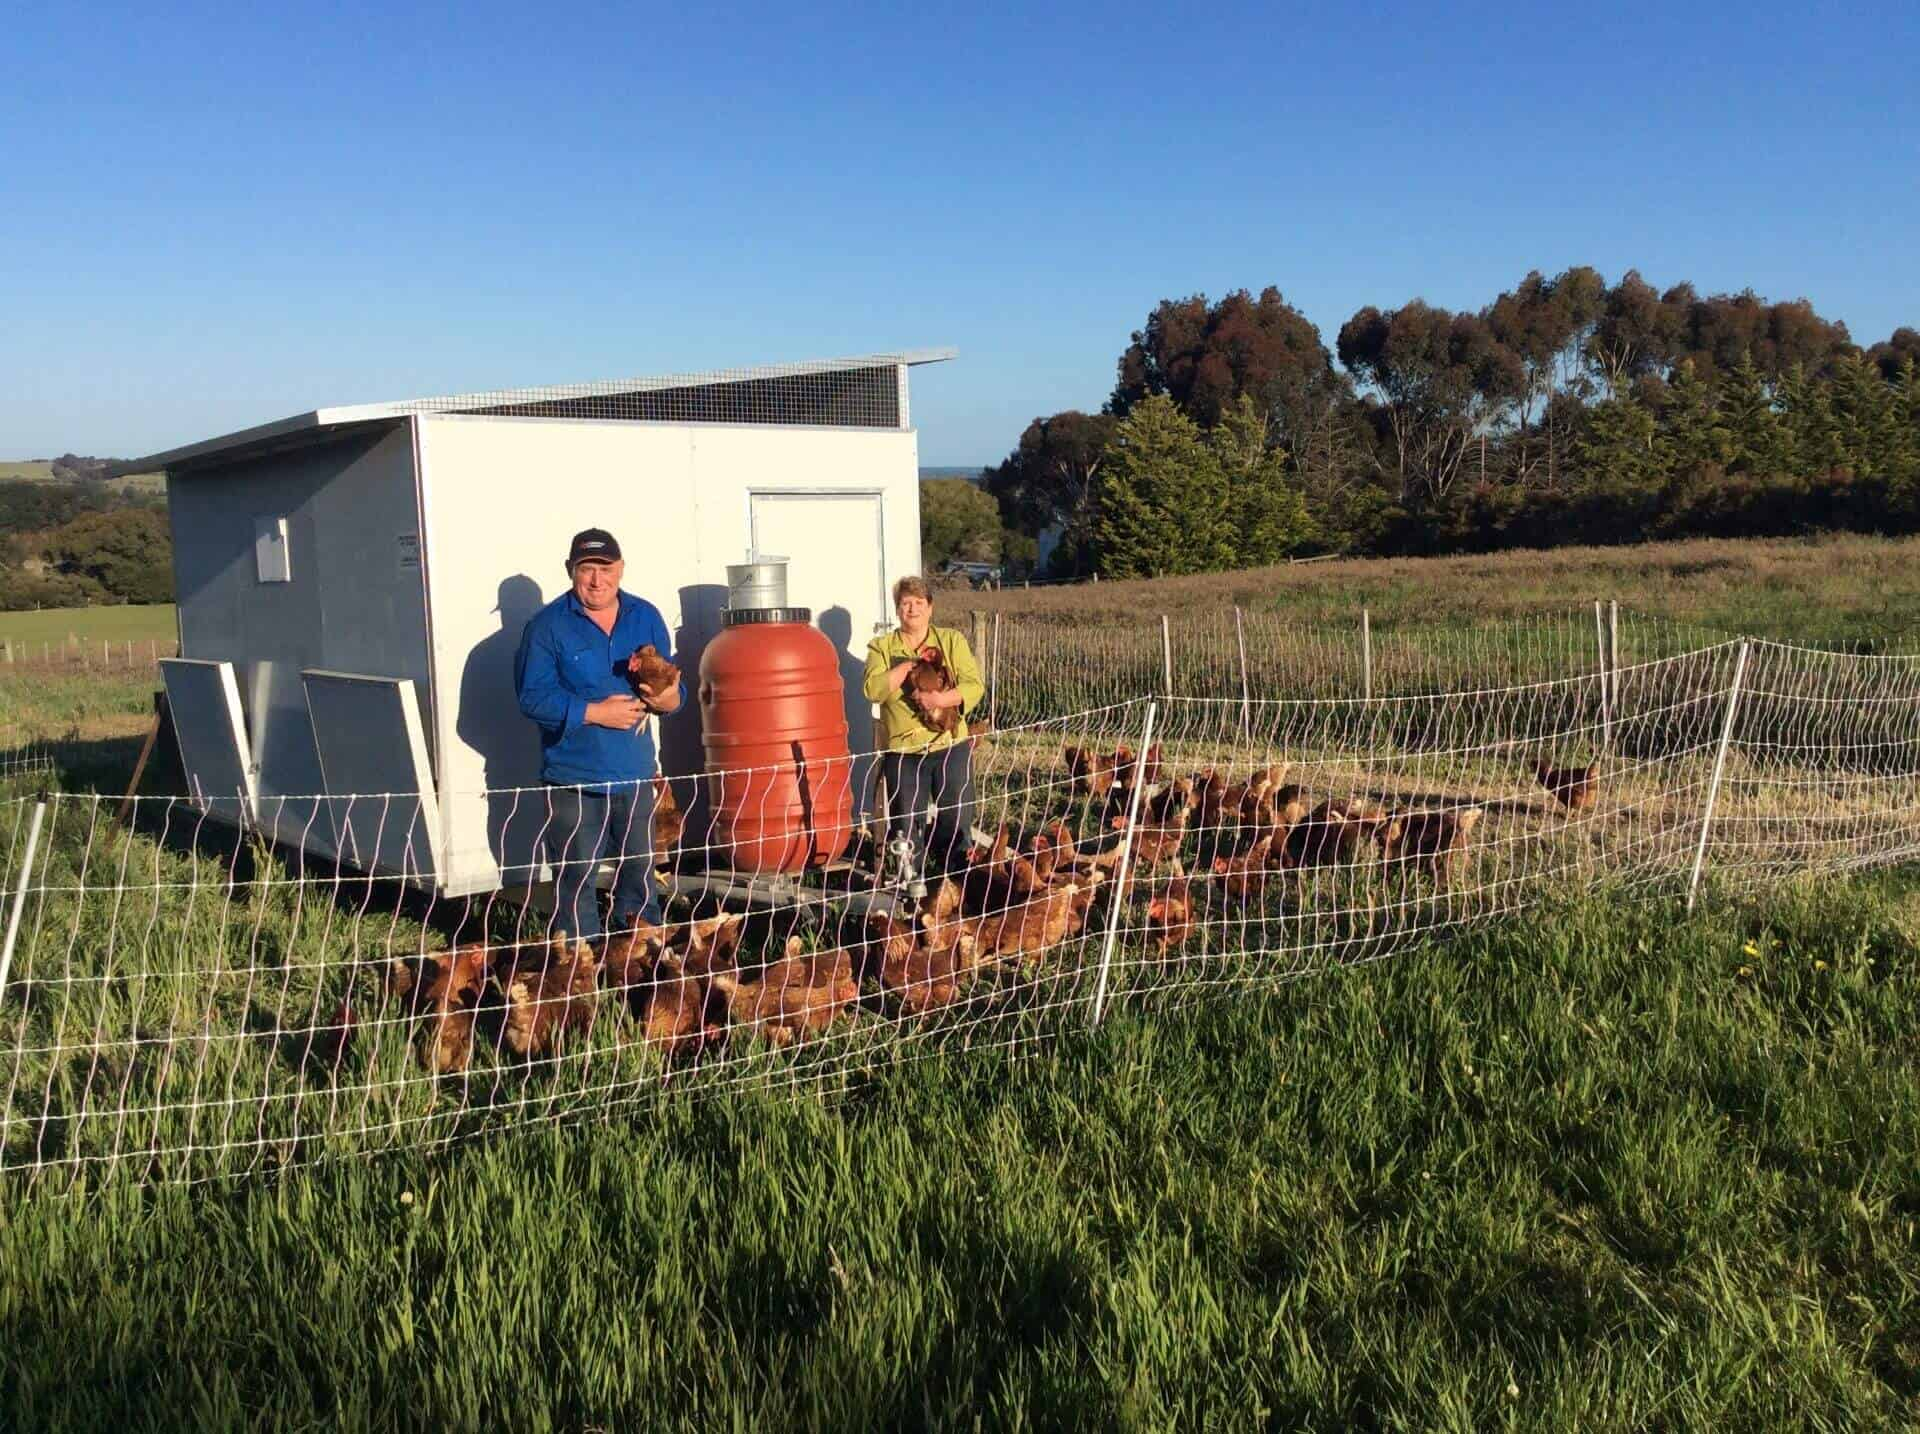 Peter and Rosemary from Edd's Moveable Chooks surrounded by Chickens